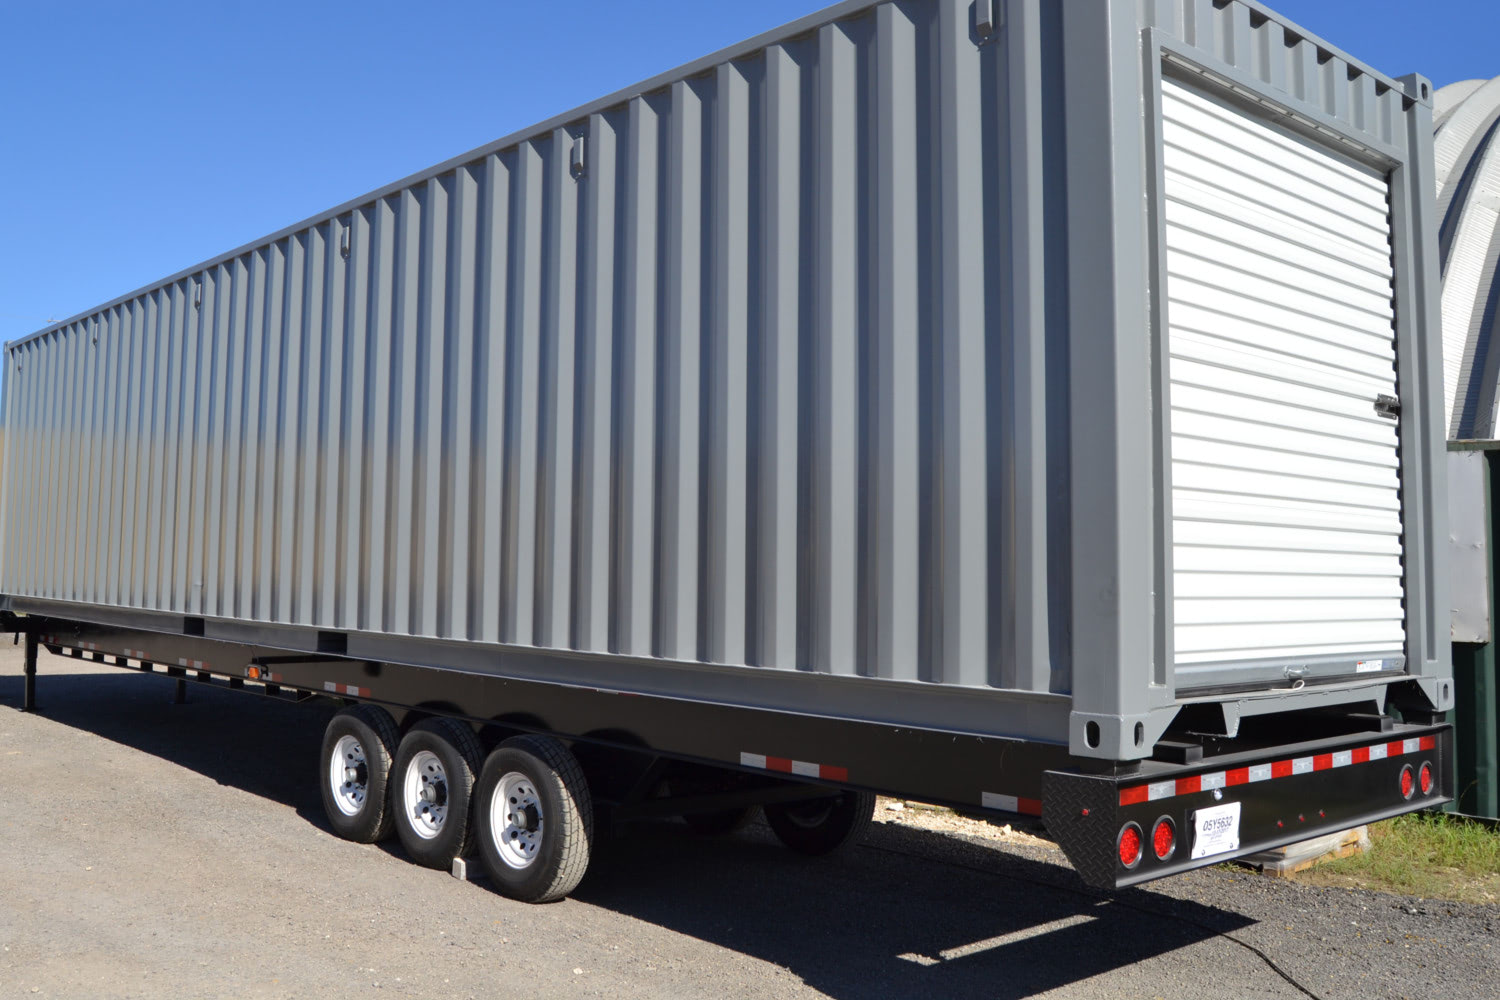 Container accessory 2: a trailer or chassis